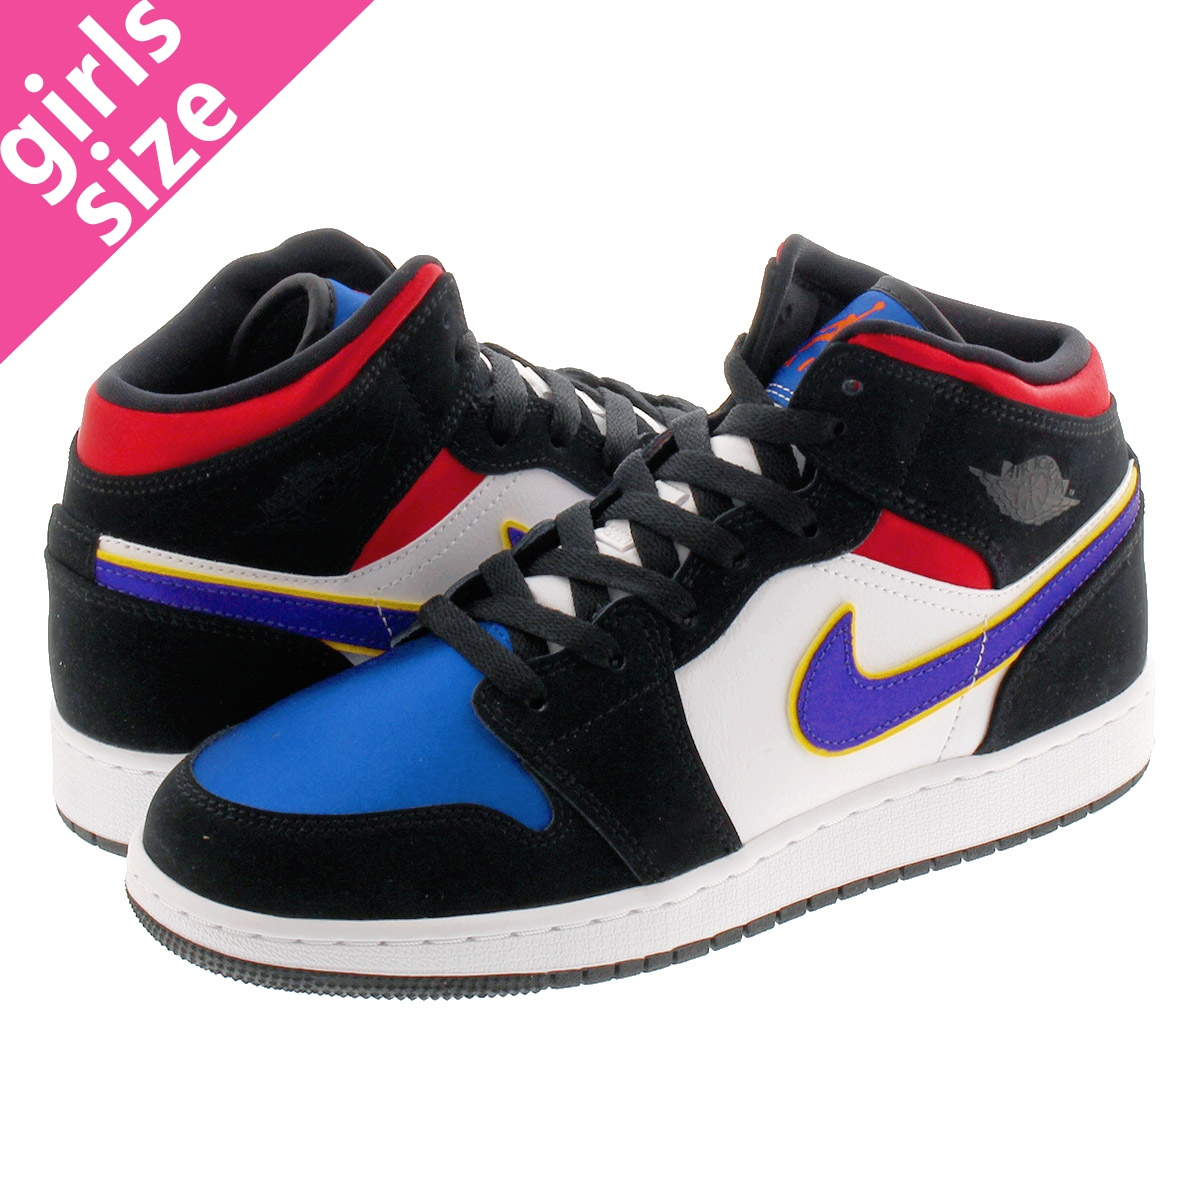 buy popular 2c4a1 8b25d NIKE AIR JORDAN 1 MID BG Nike Air Jordan 1 mid BG BLACK/FIELD  PURPLE/WHITE/GYM RED bq6931-005